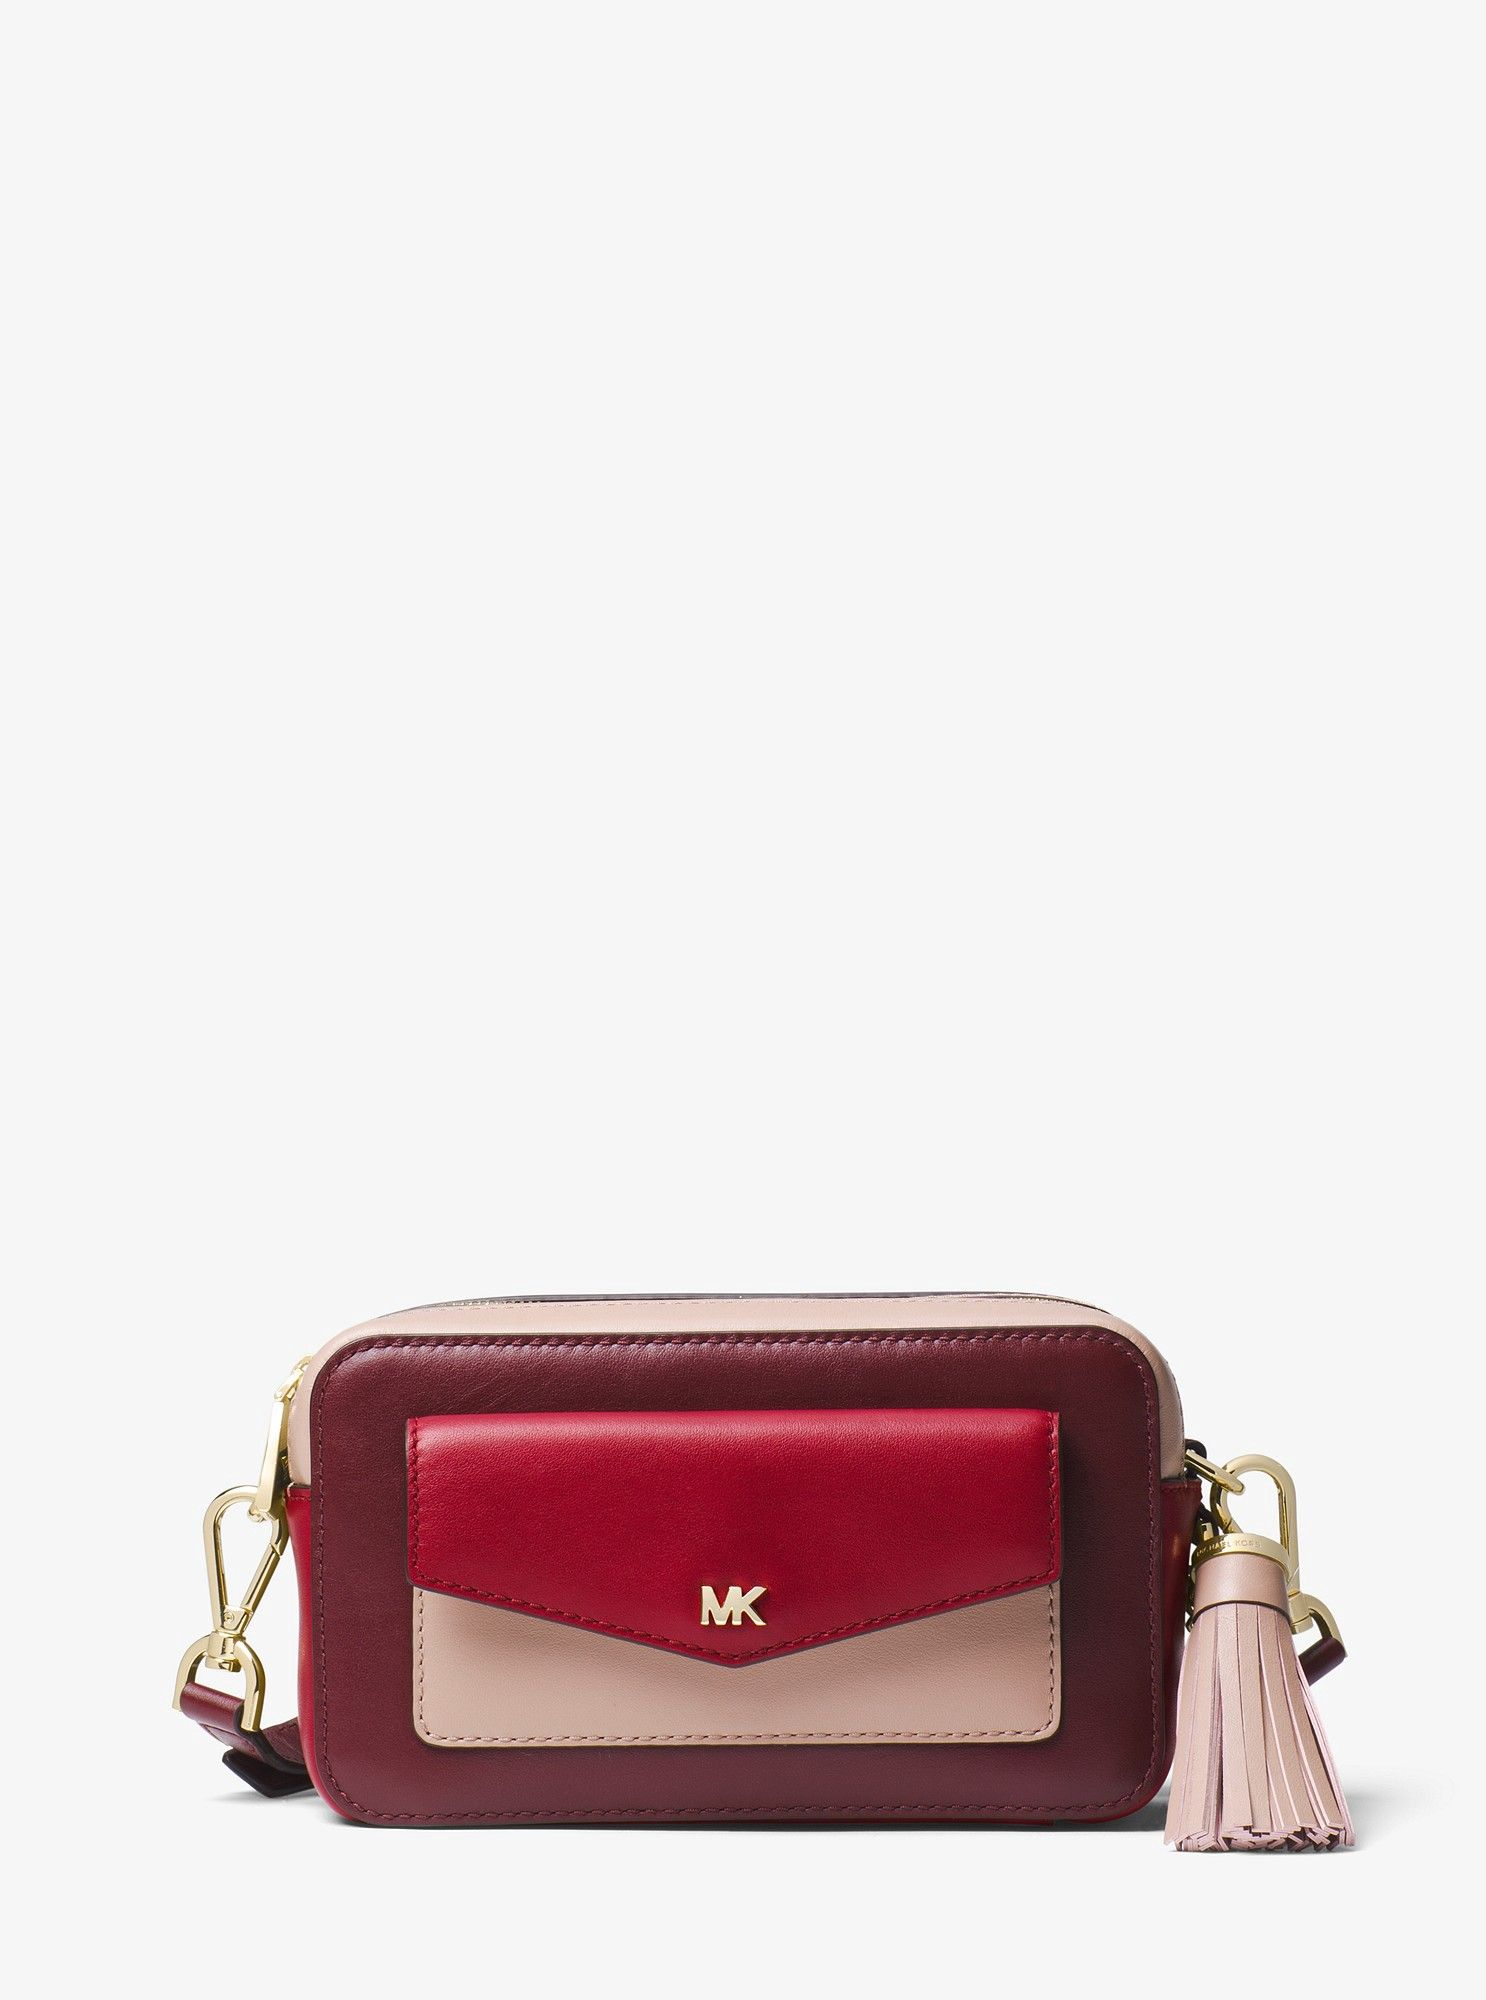 cddef07a762a Small Tri-Color Leather Camera Bag by Michael Kors | Products ...